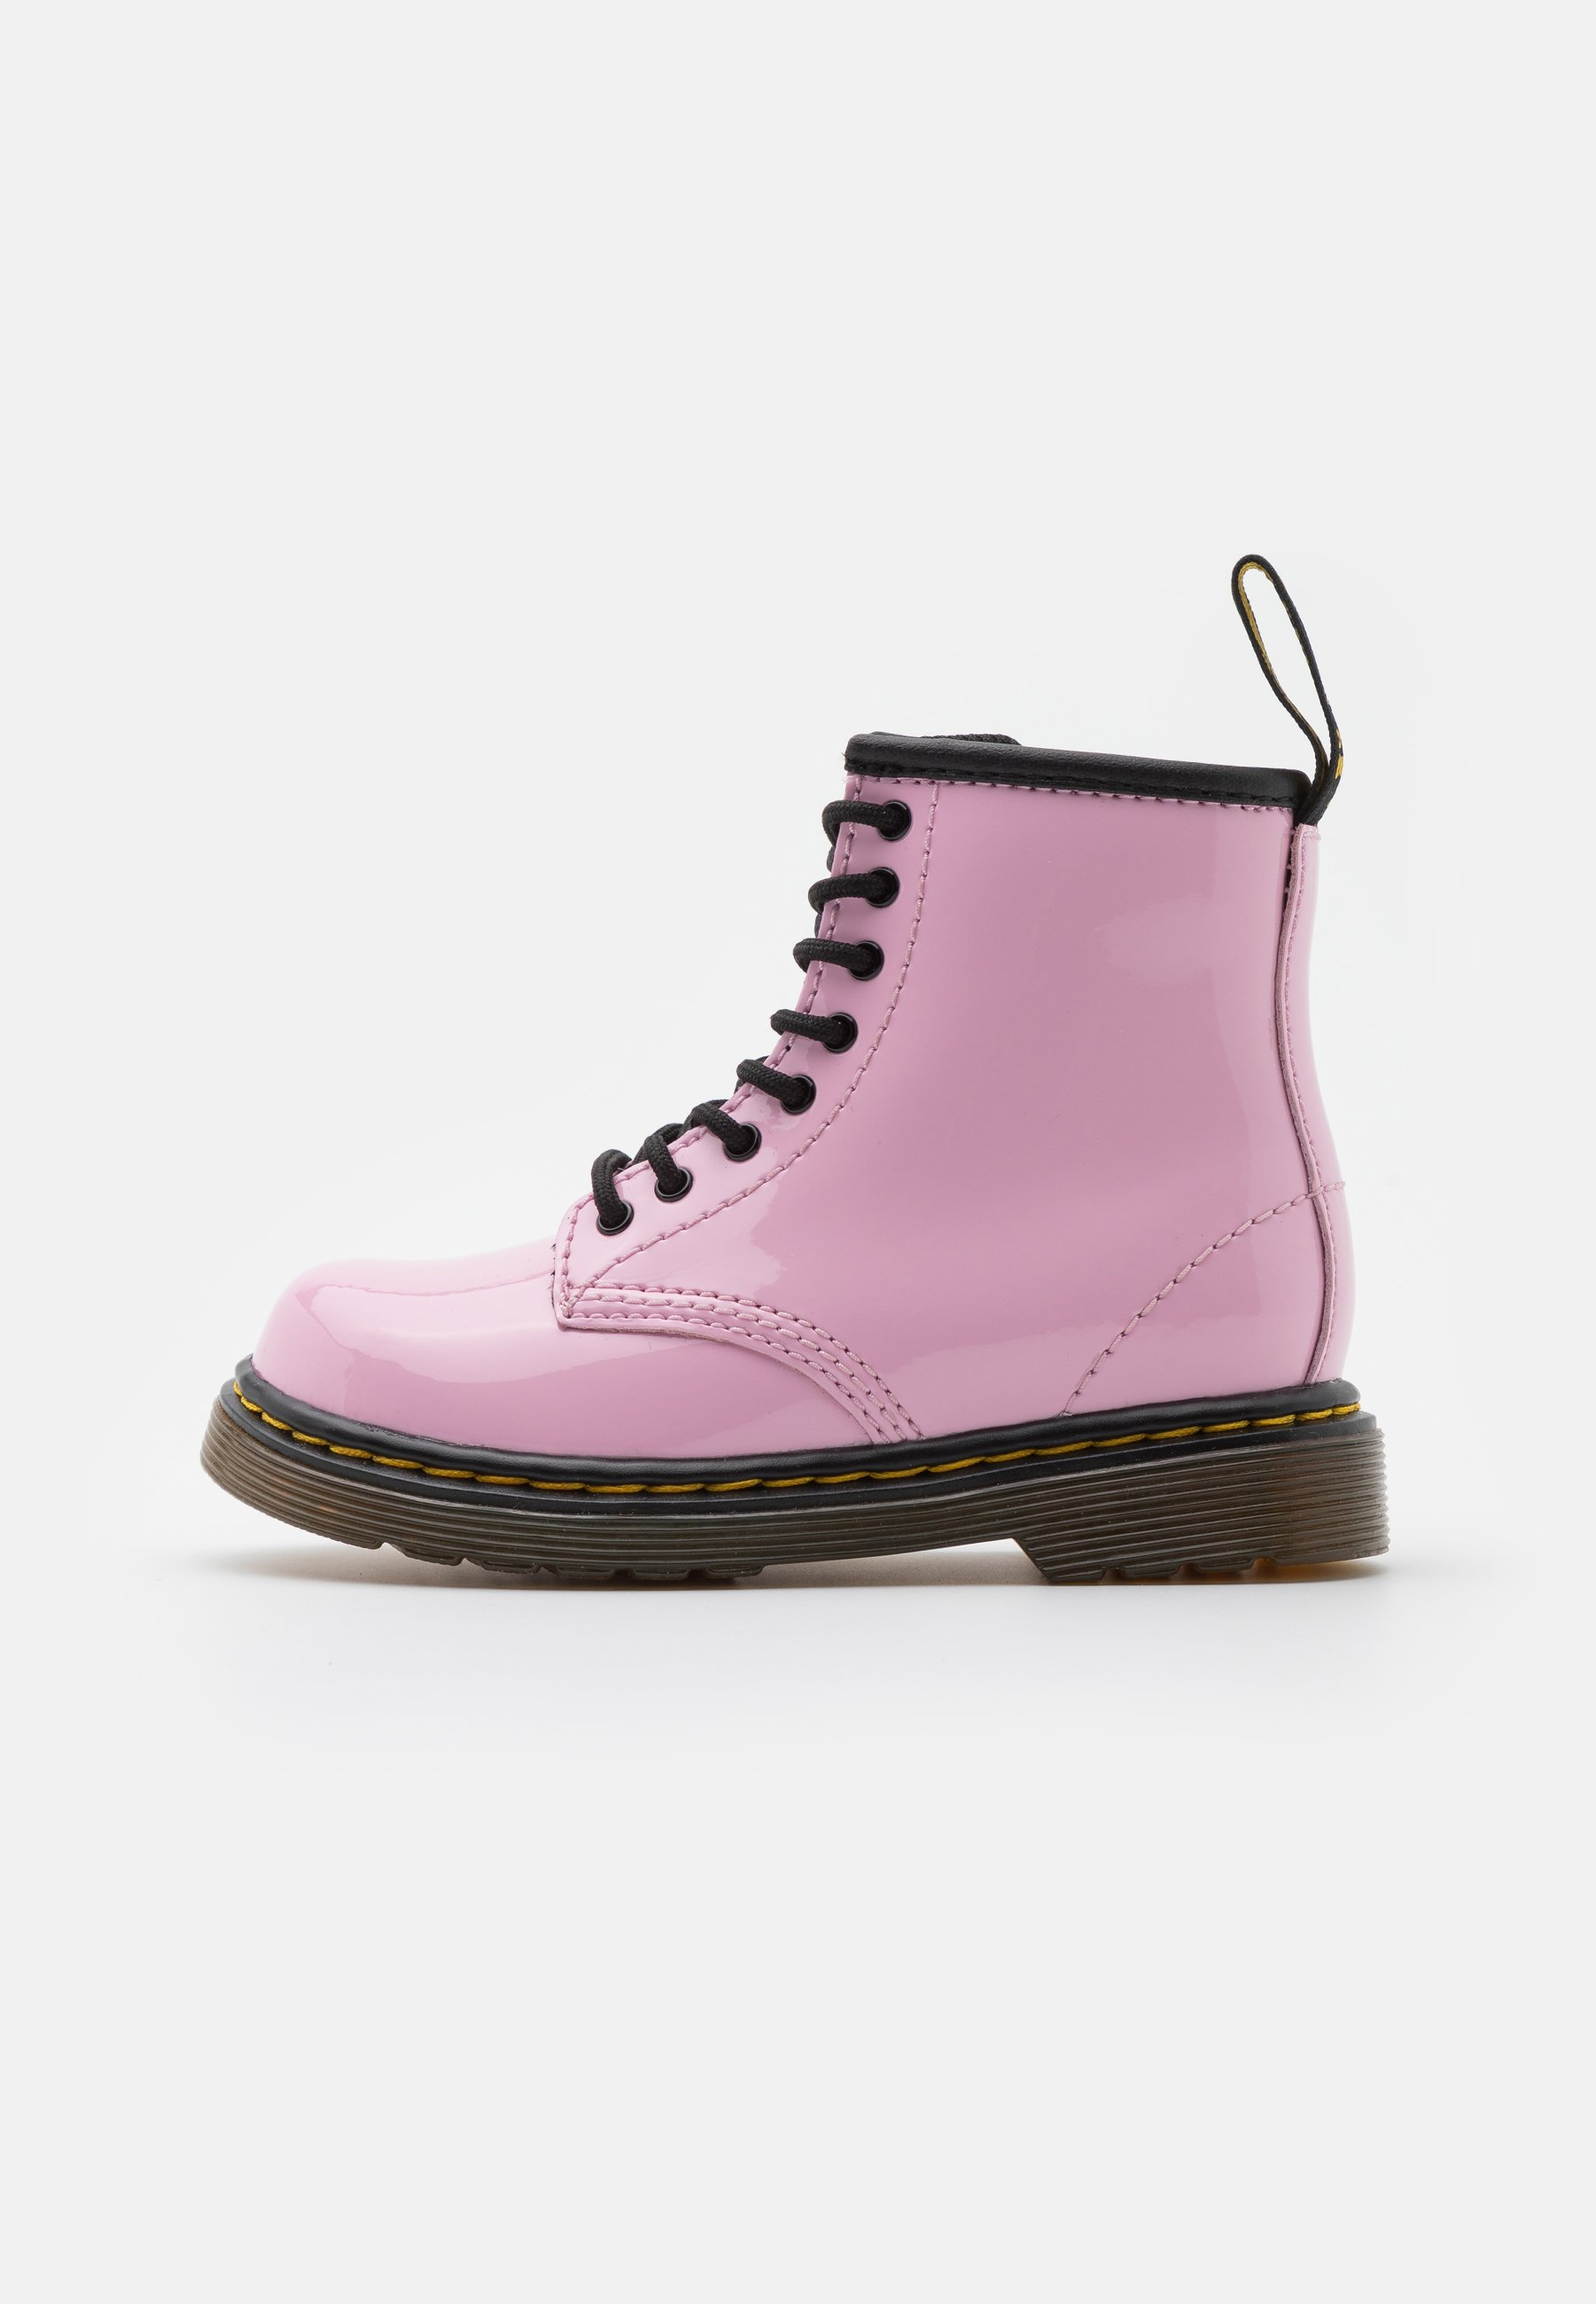 Kids 1460 - Lace-up ankle boots - pale pink